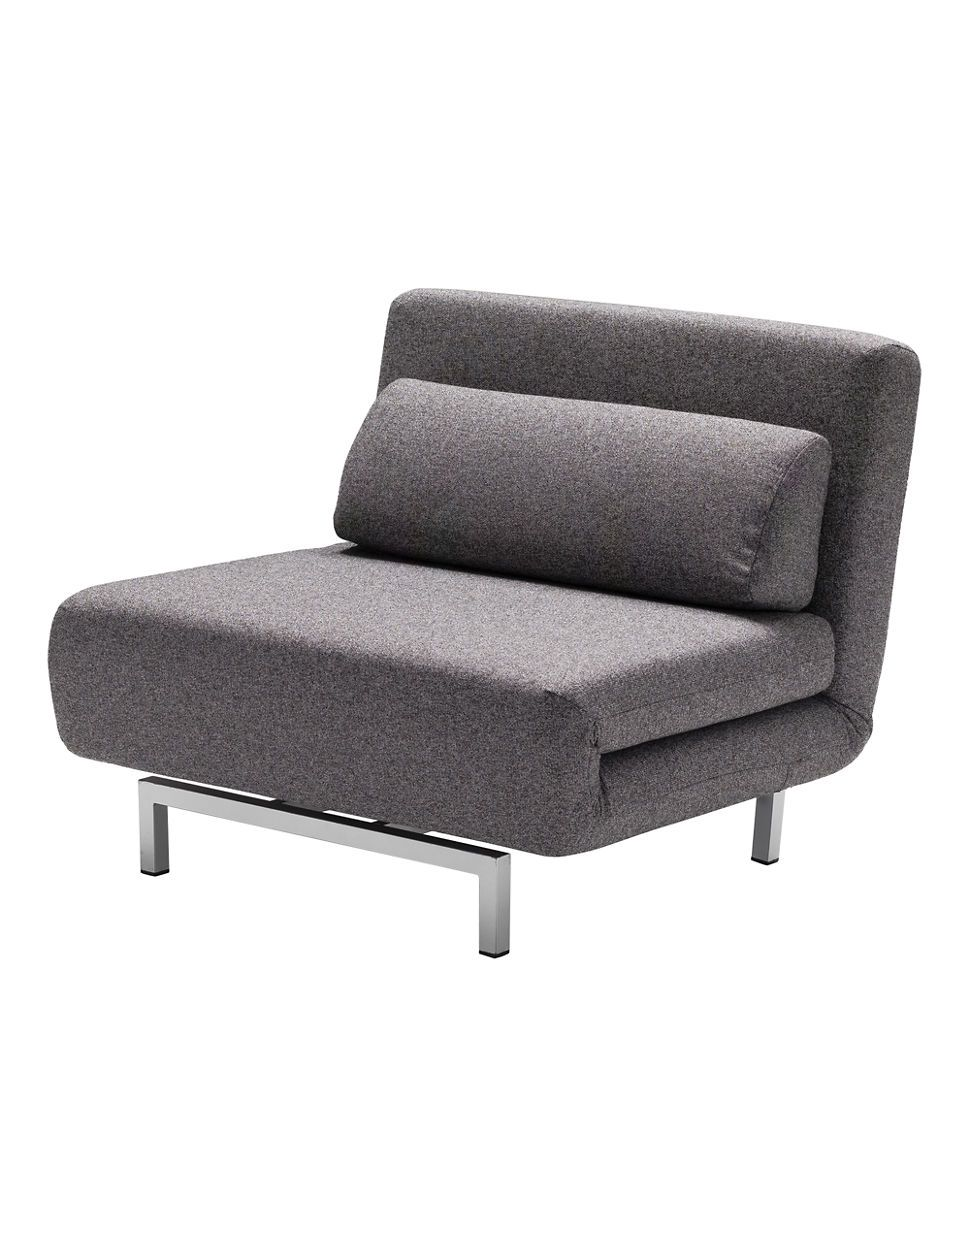 Home | Sofas | ISO Flip Chair - Sofa Bed | Hudsonu0027s Bay  sc 1 st  Pinterest & Home | Sofas | ISO Flip Chair - Sofa Bed | Hudsonu0027s Bay | SOFA BED ...